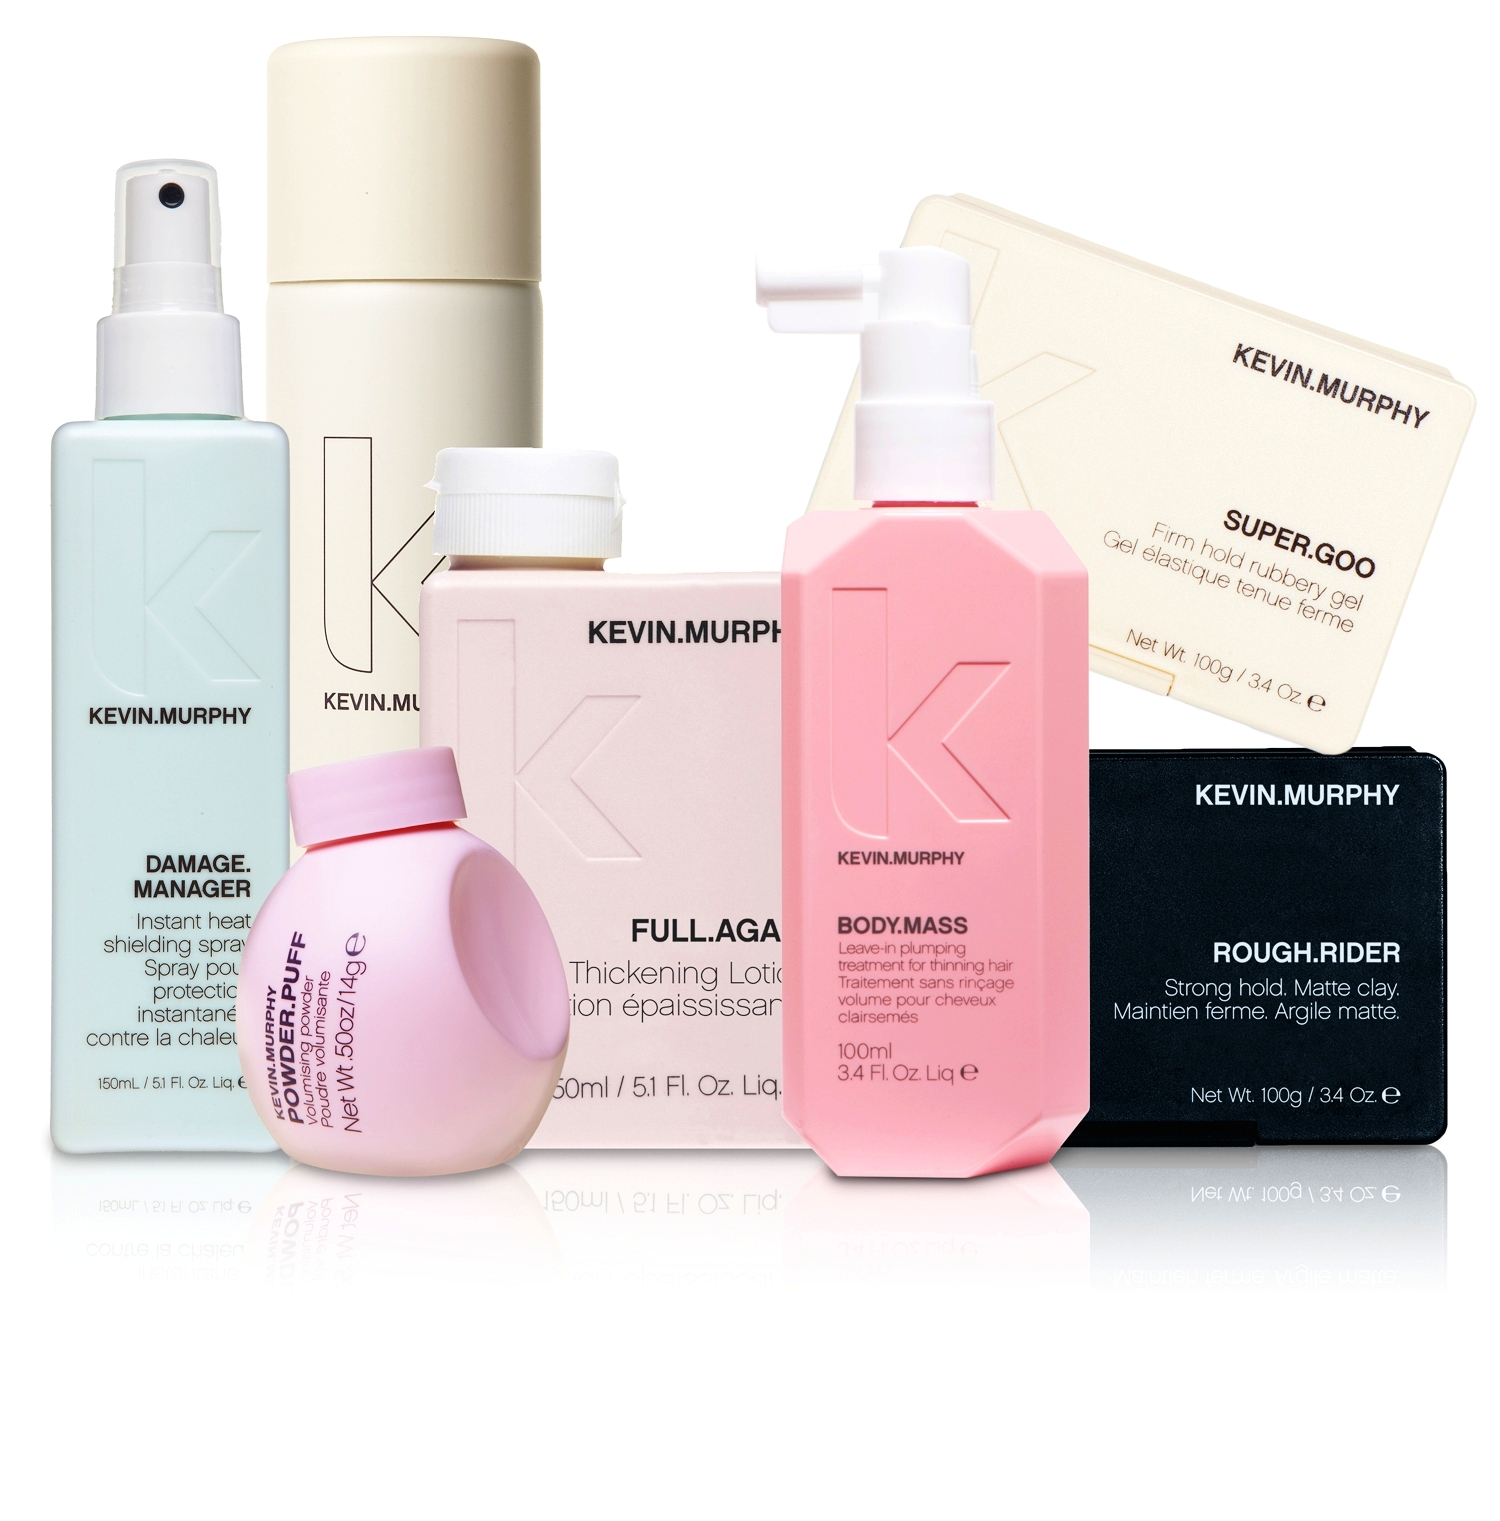 KEVIN MURPHY - View Full WebsiteFind Your Product Match